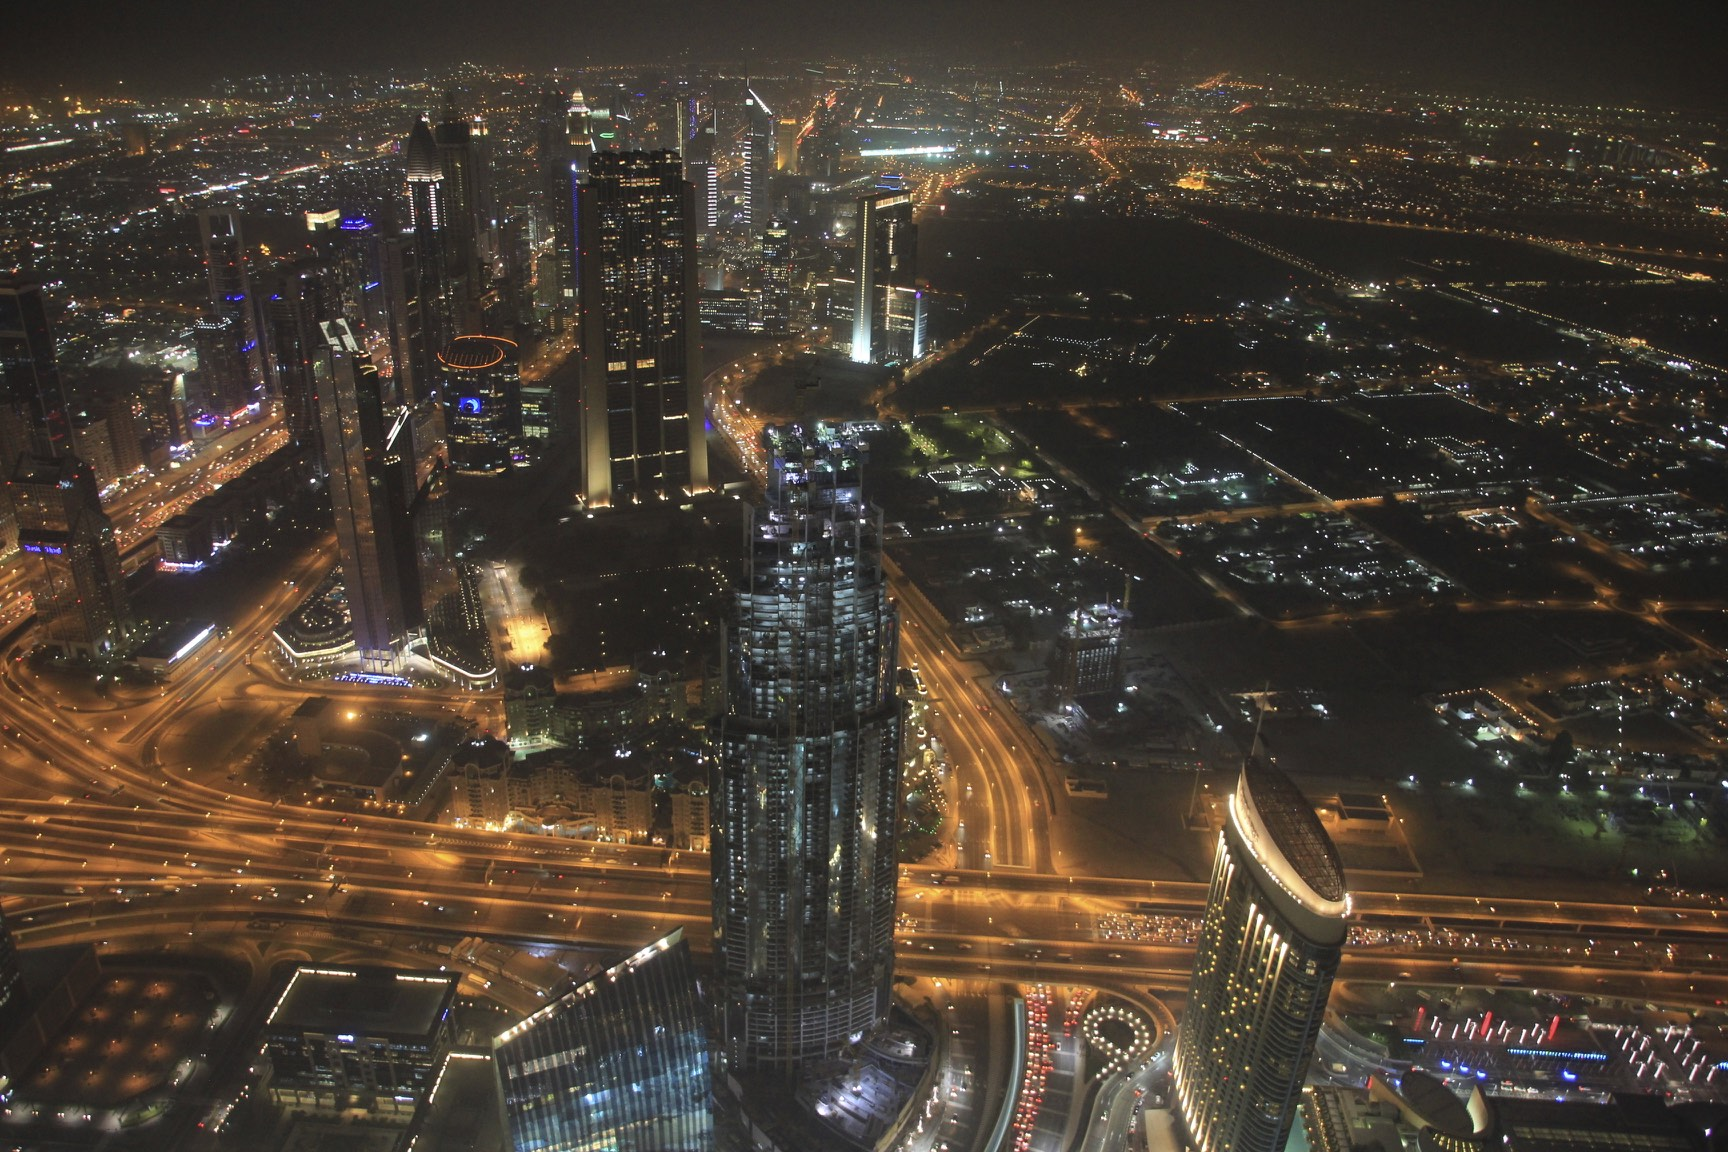 The view from 123 floor of the Burj Kalifa